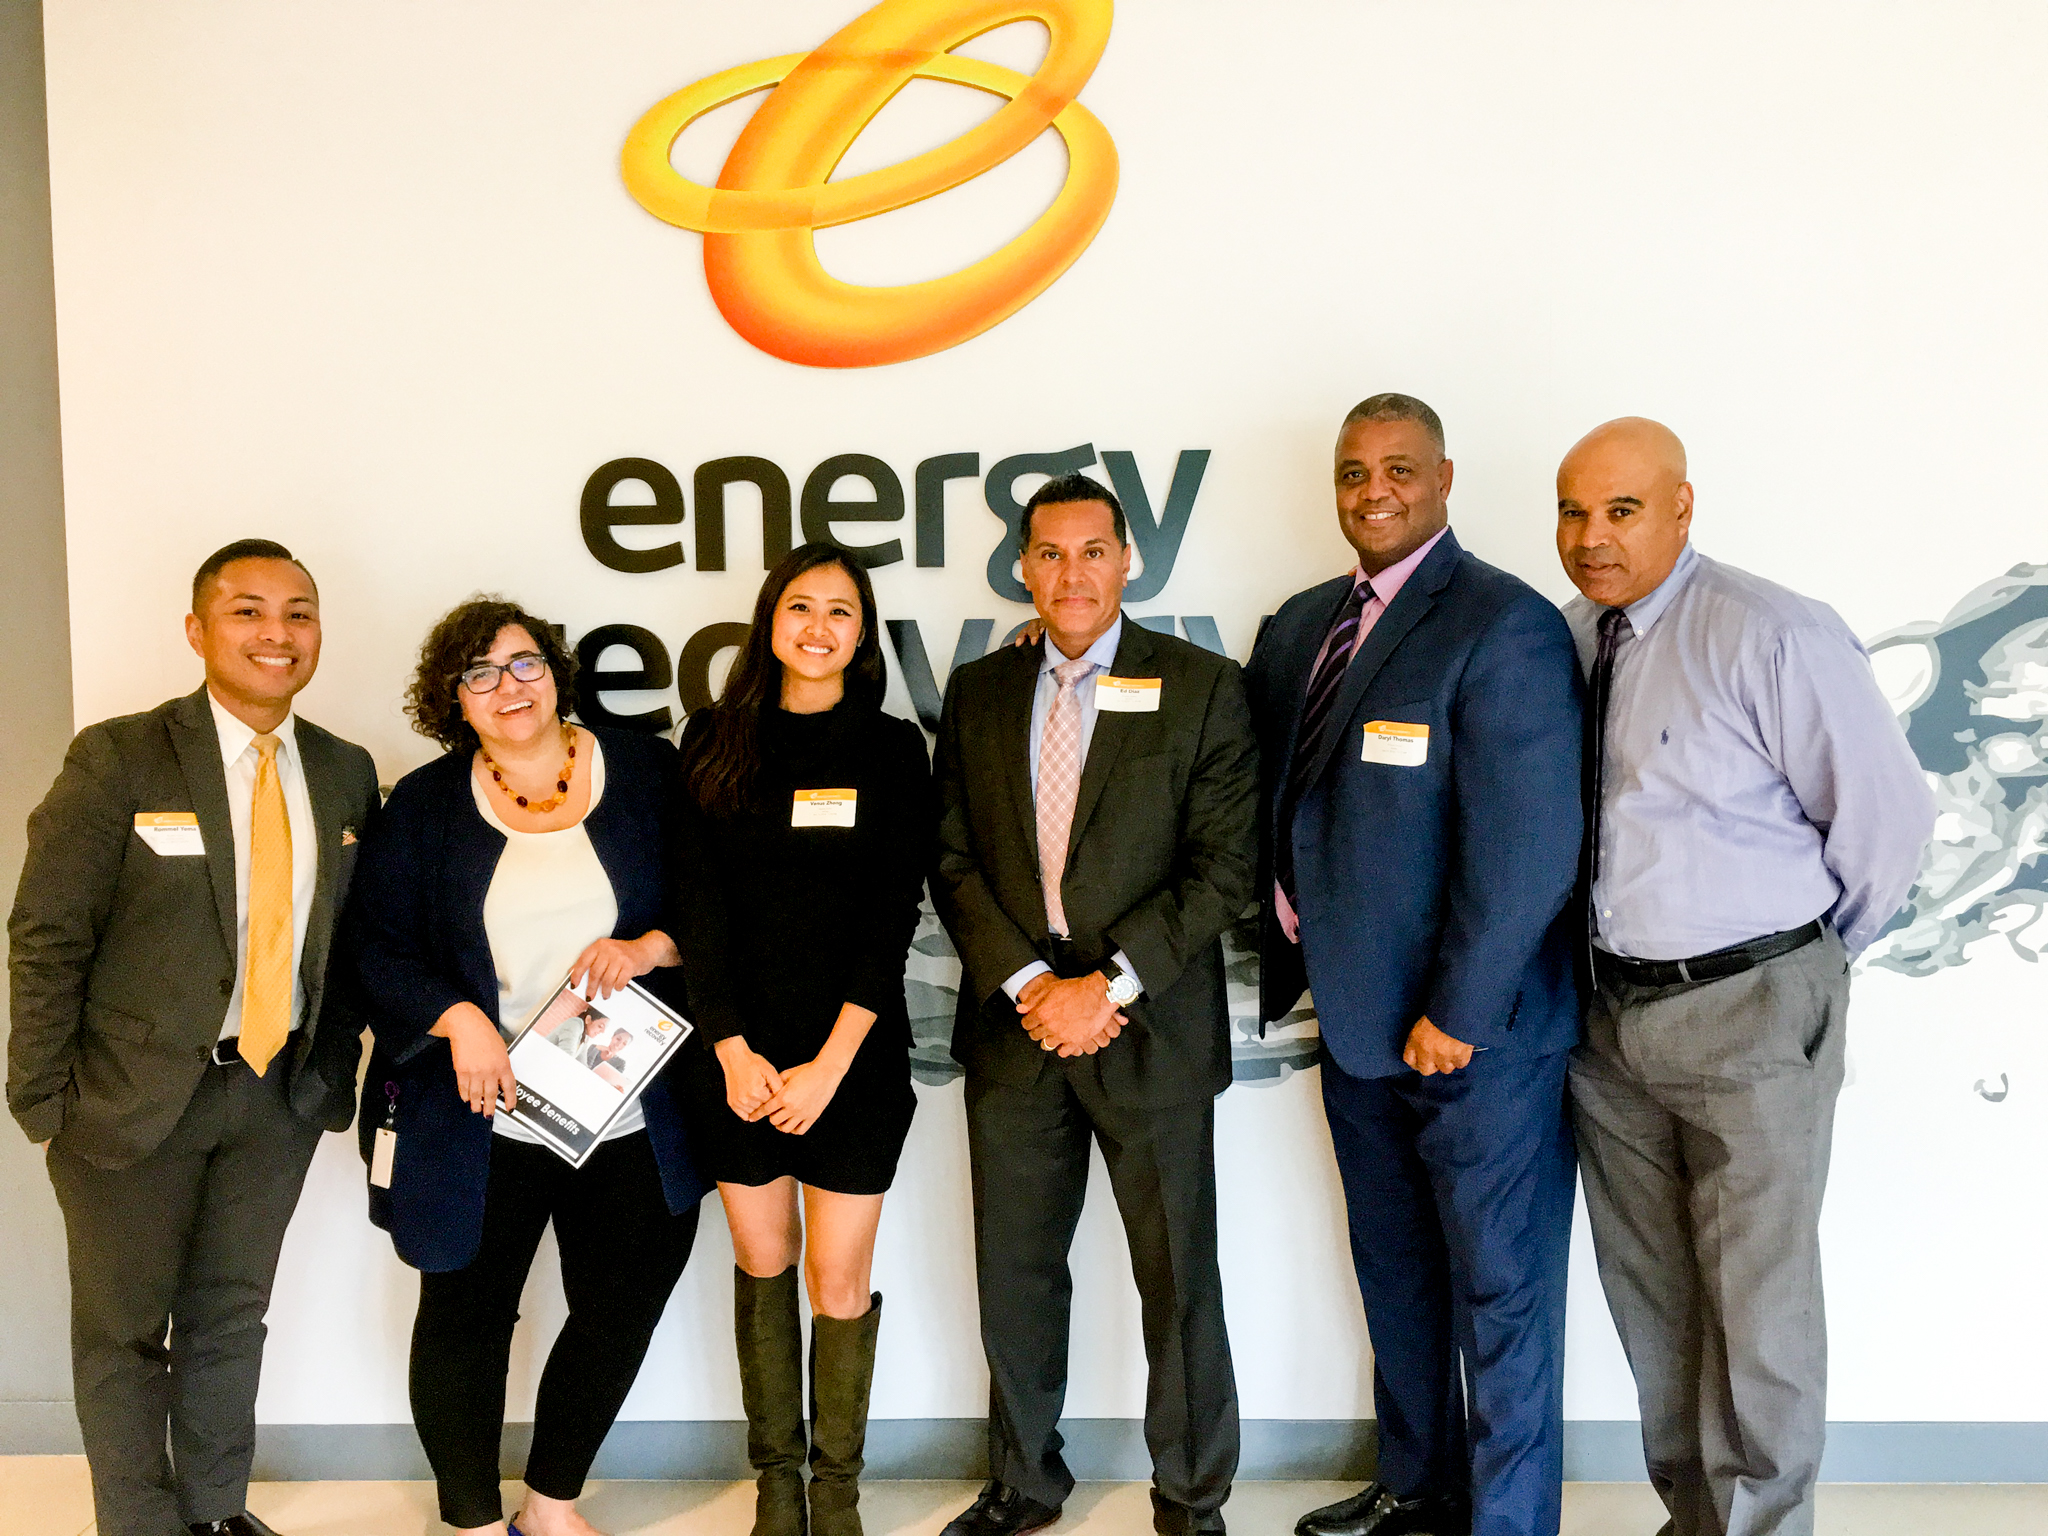 Avant Real Estate Group at Energy Recovery, Inc.'s Event